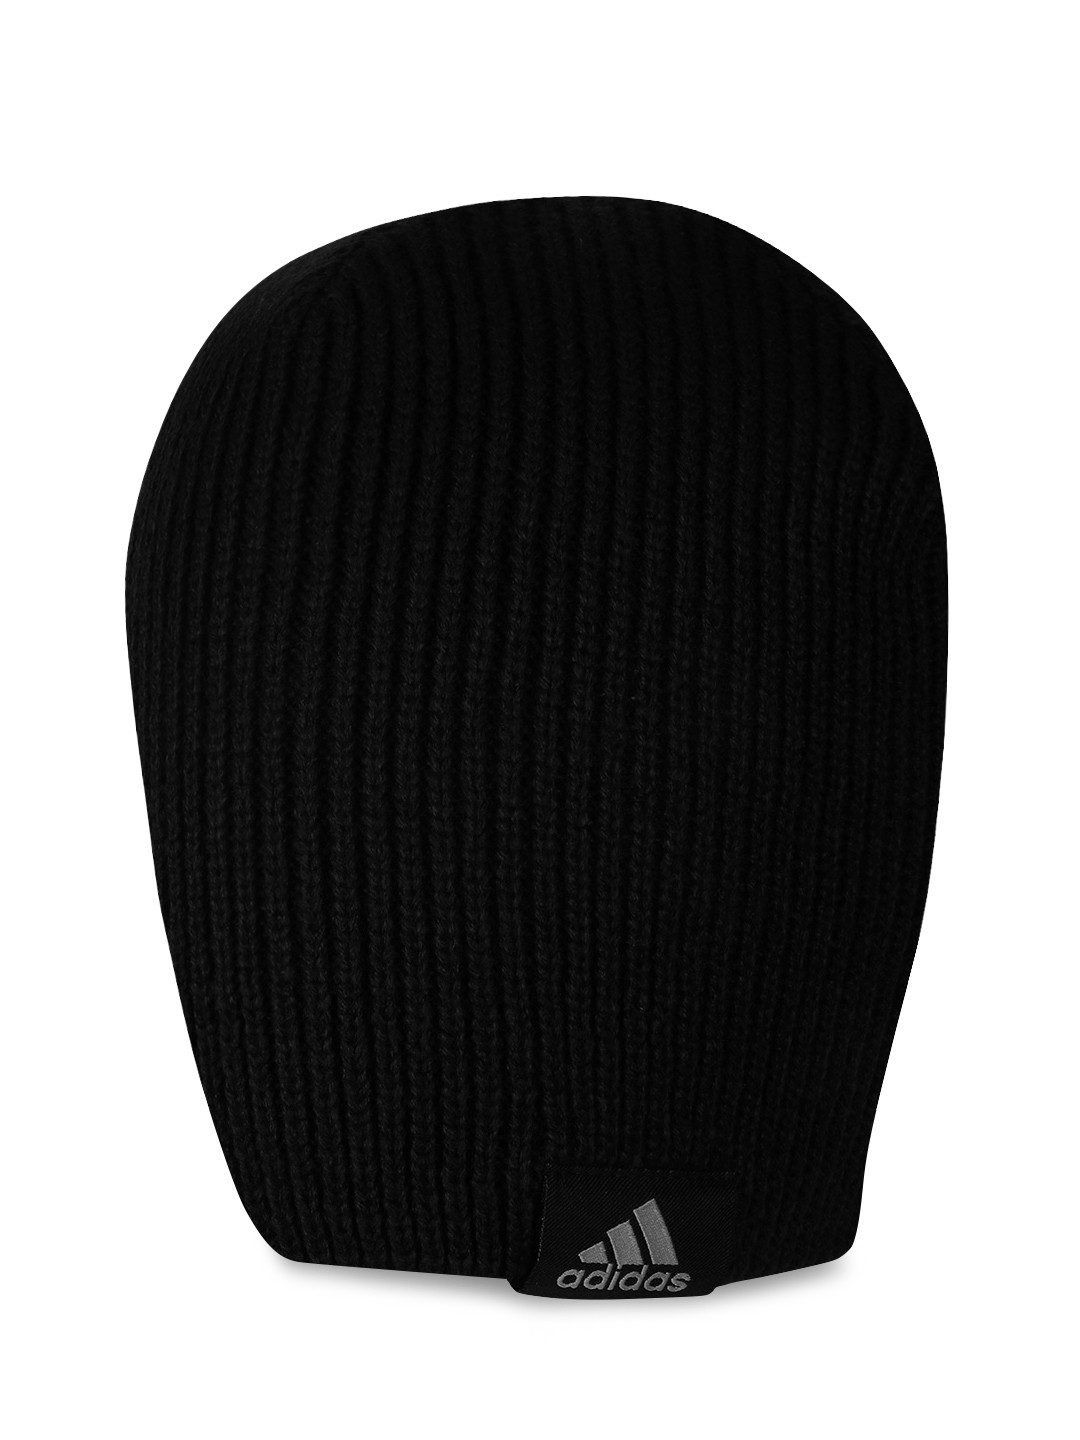 Adidas Black Performance Beanie 1